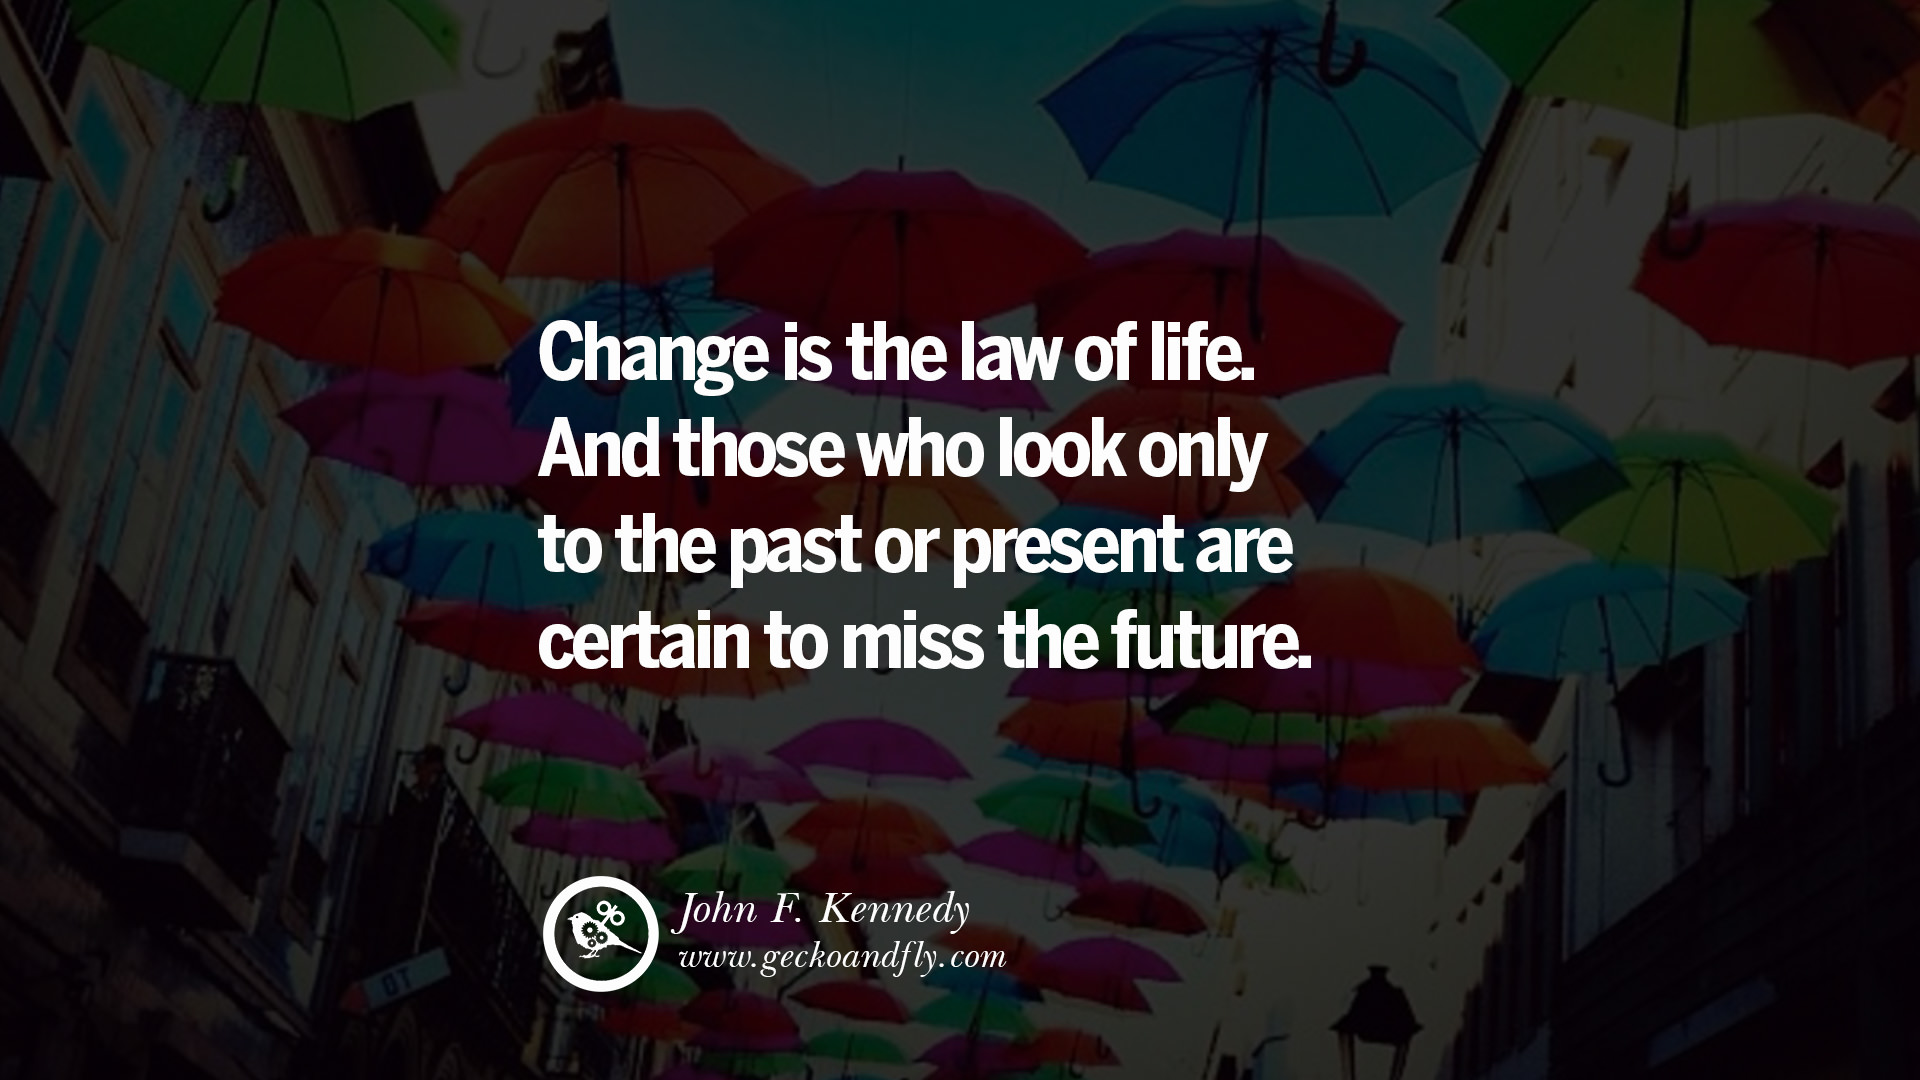 essay on change is the law of life Some people argue laws changes human behavior whereas some disagree do  you agree with it argumentative / persuasive/ opinionated type essay.